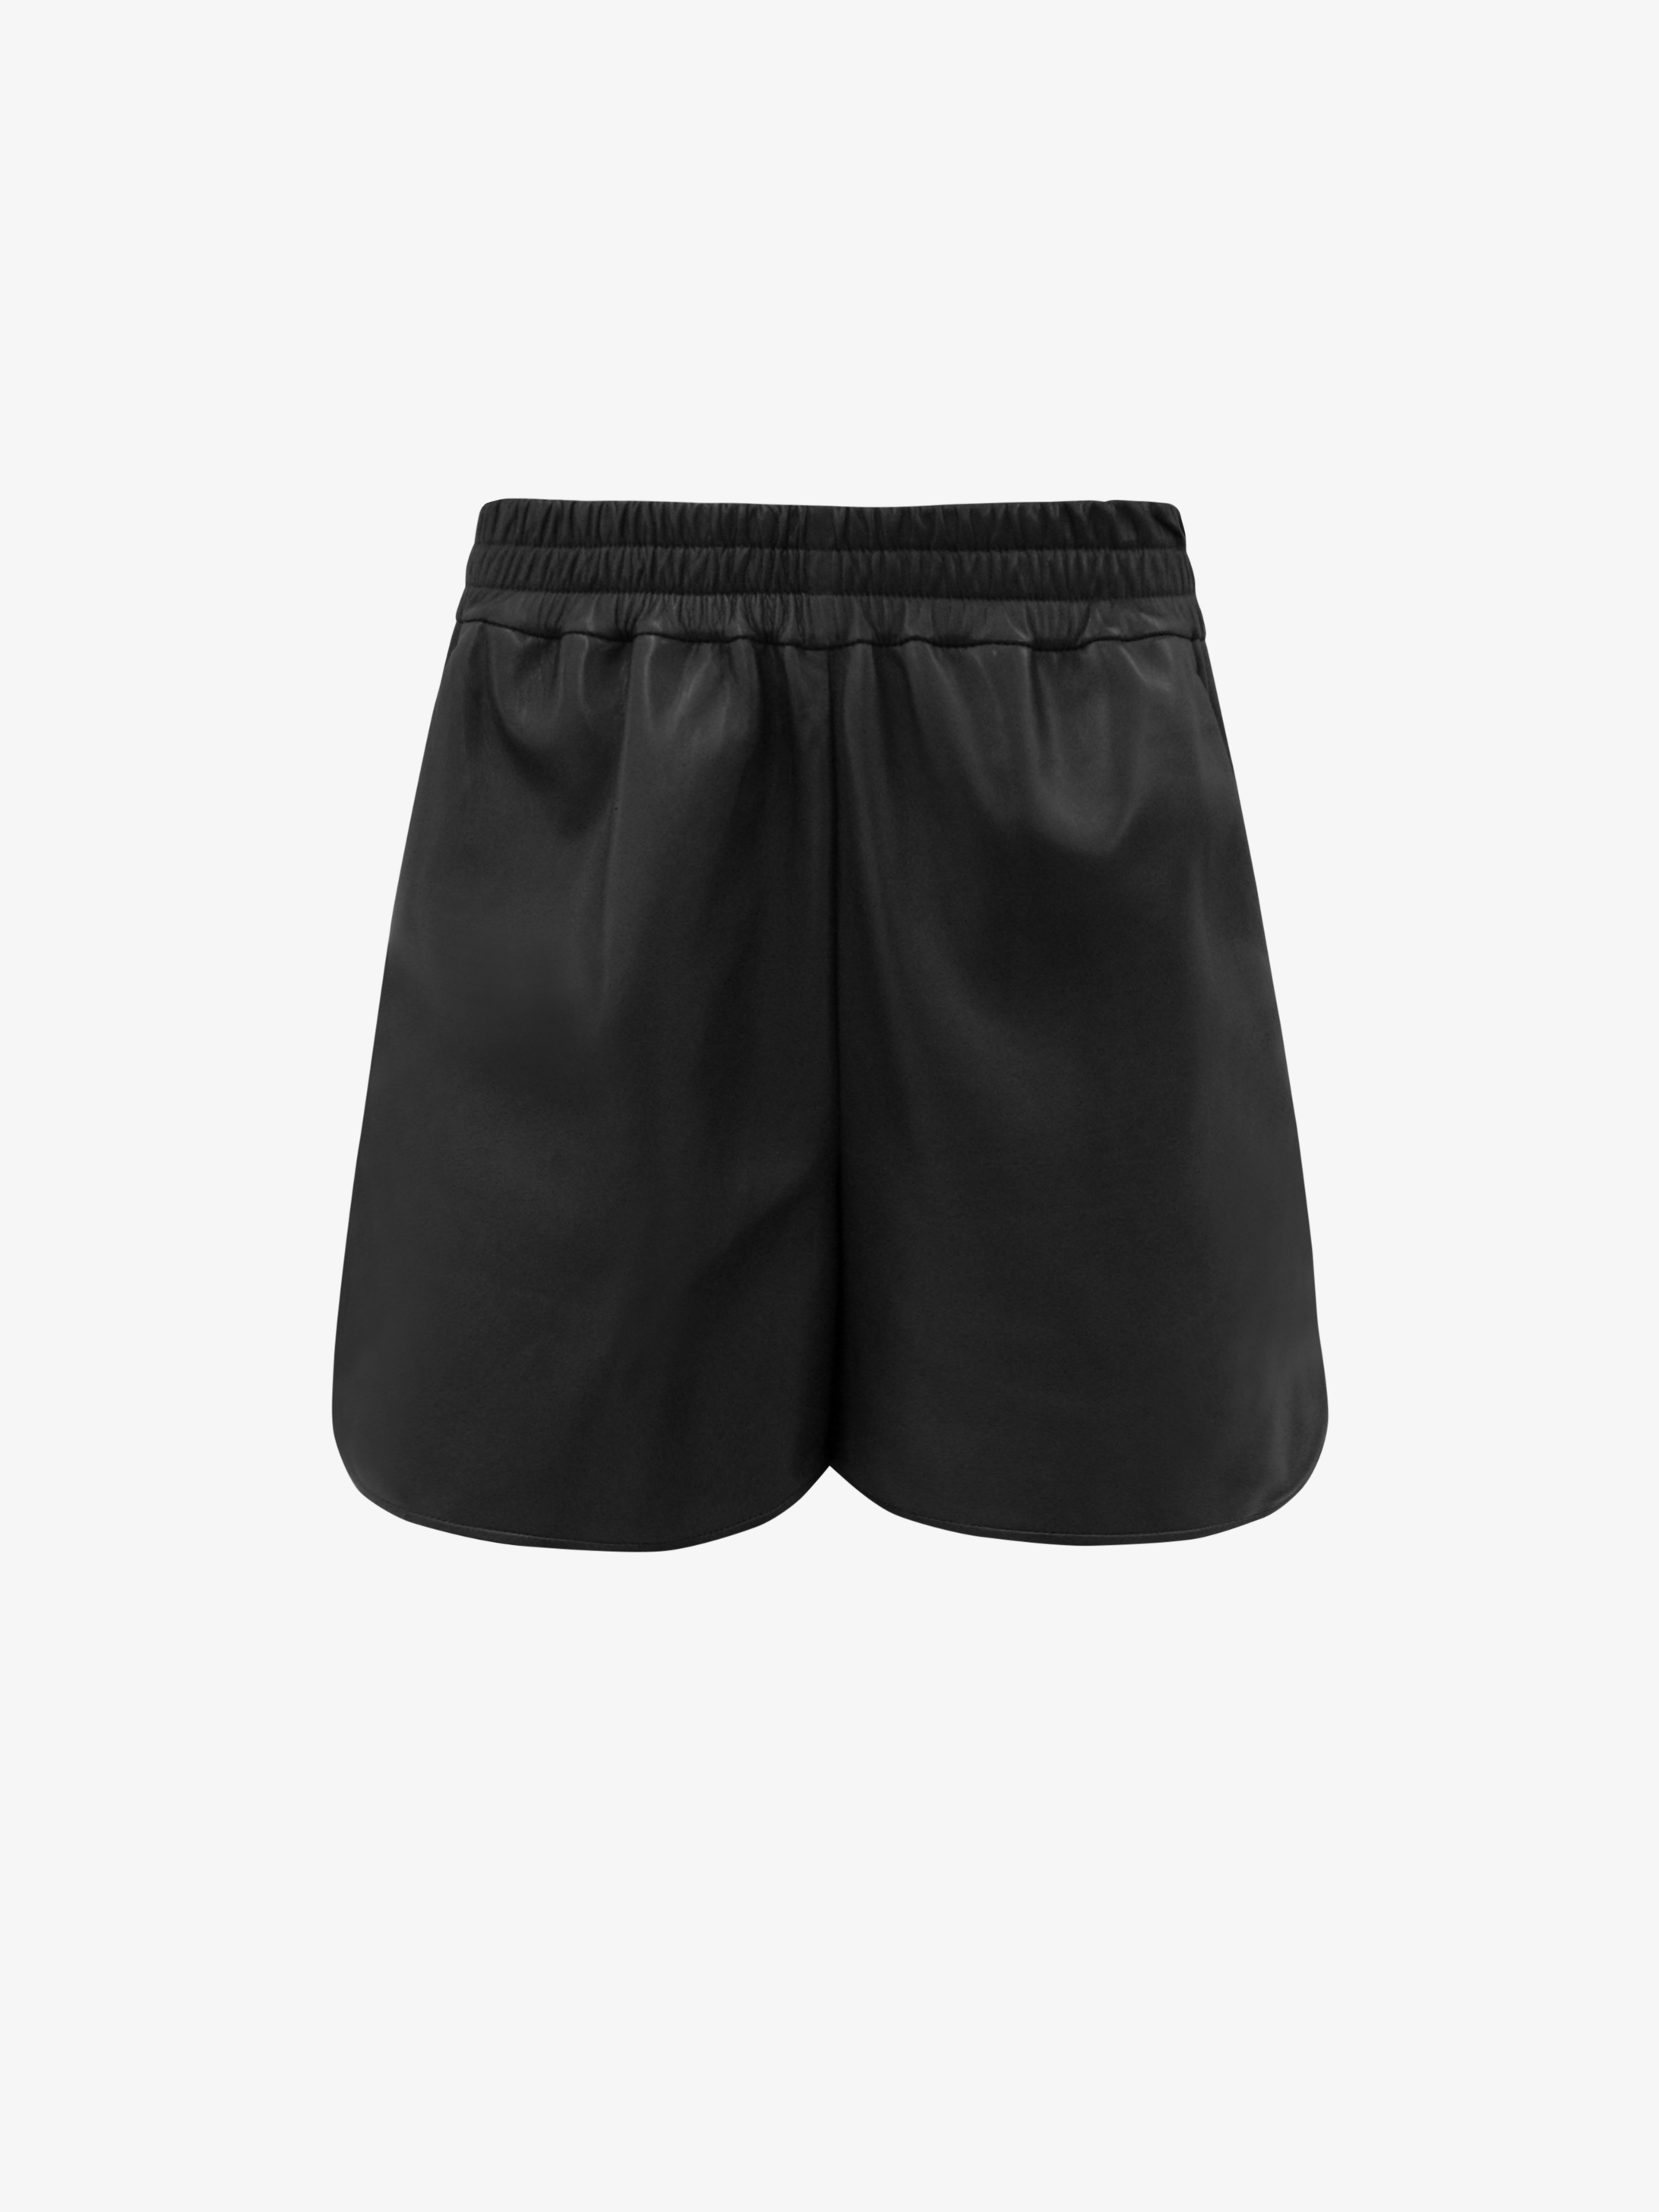 Short in smooth leather